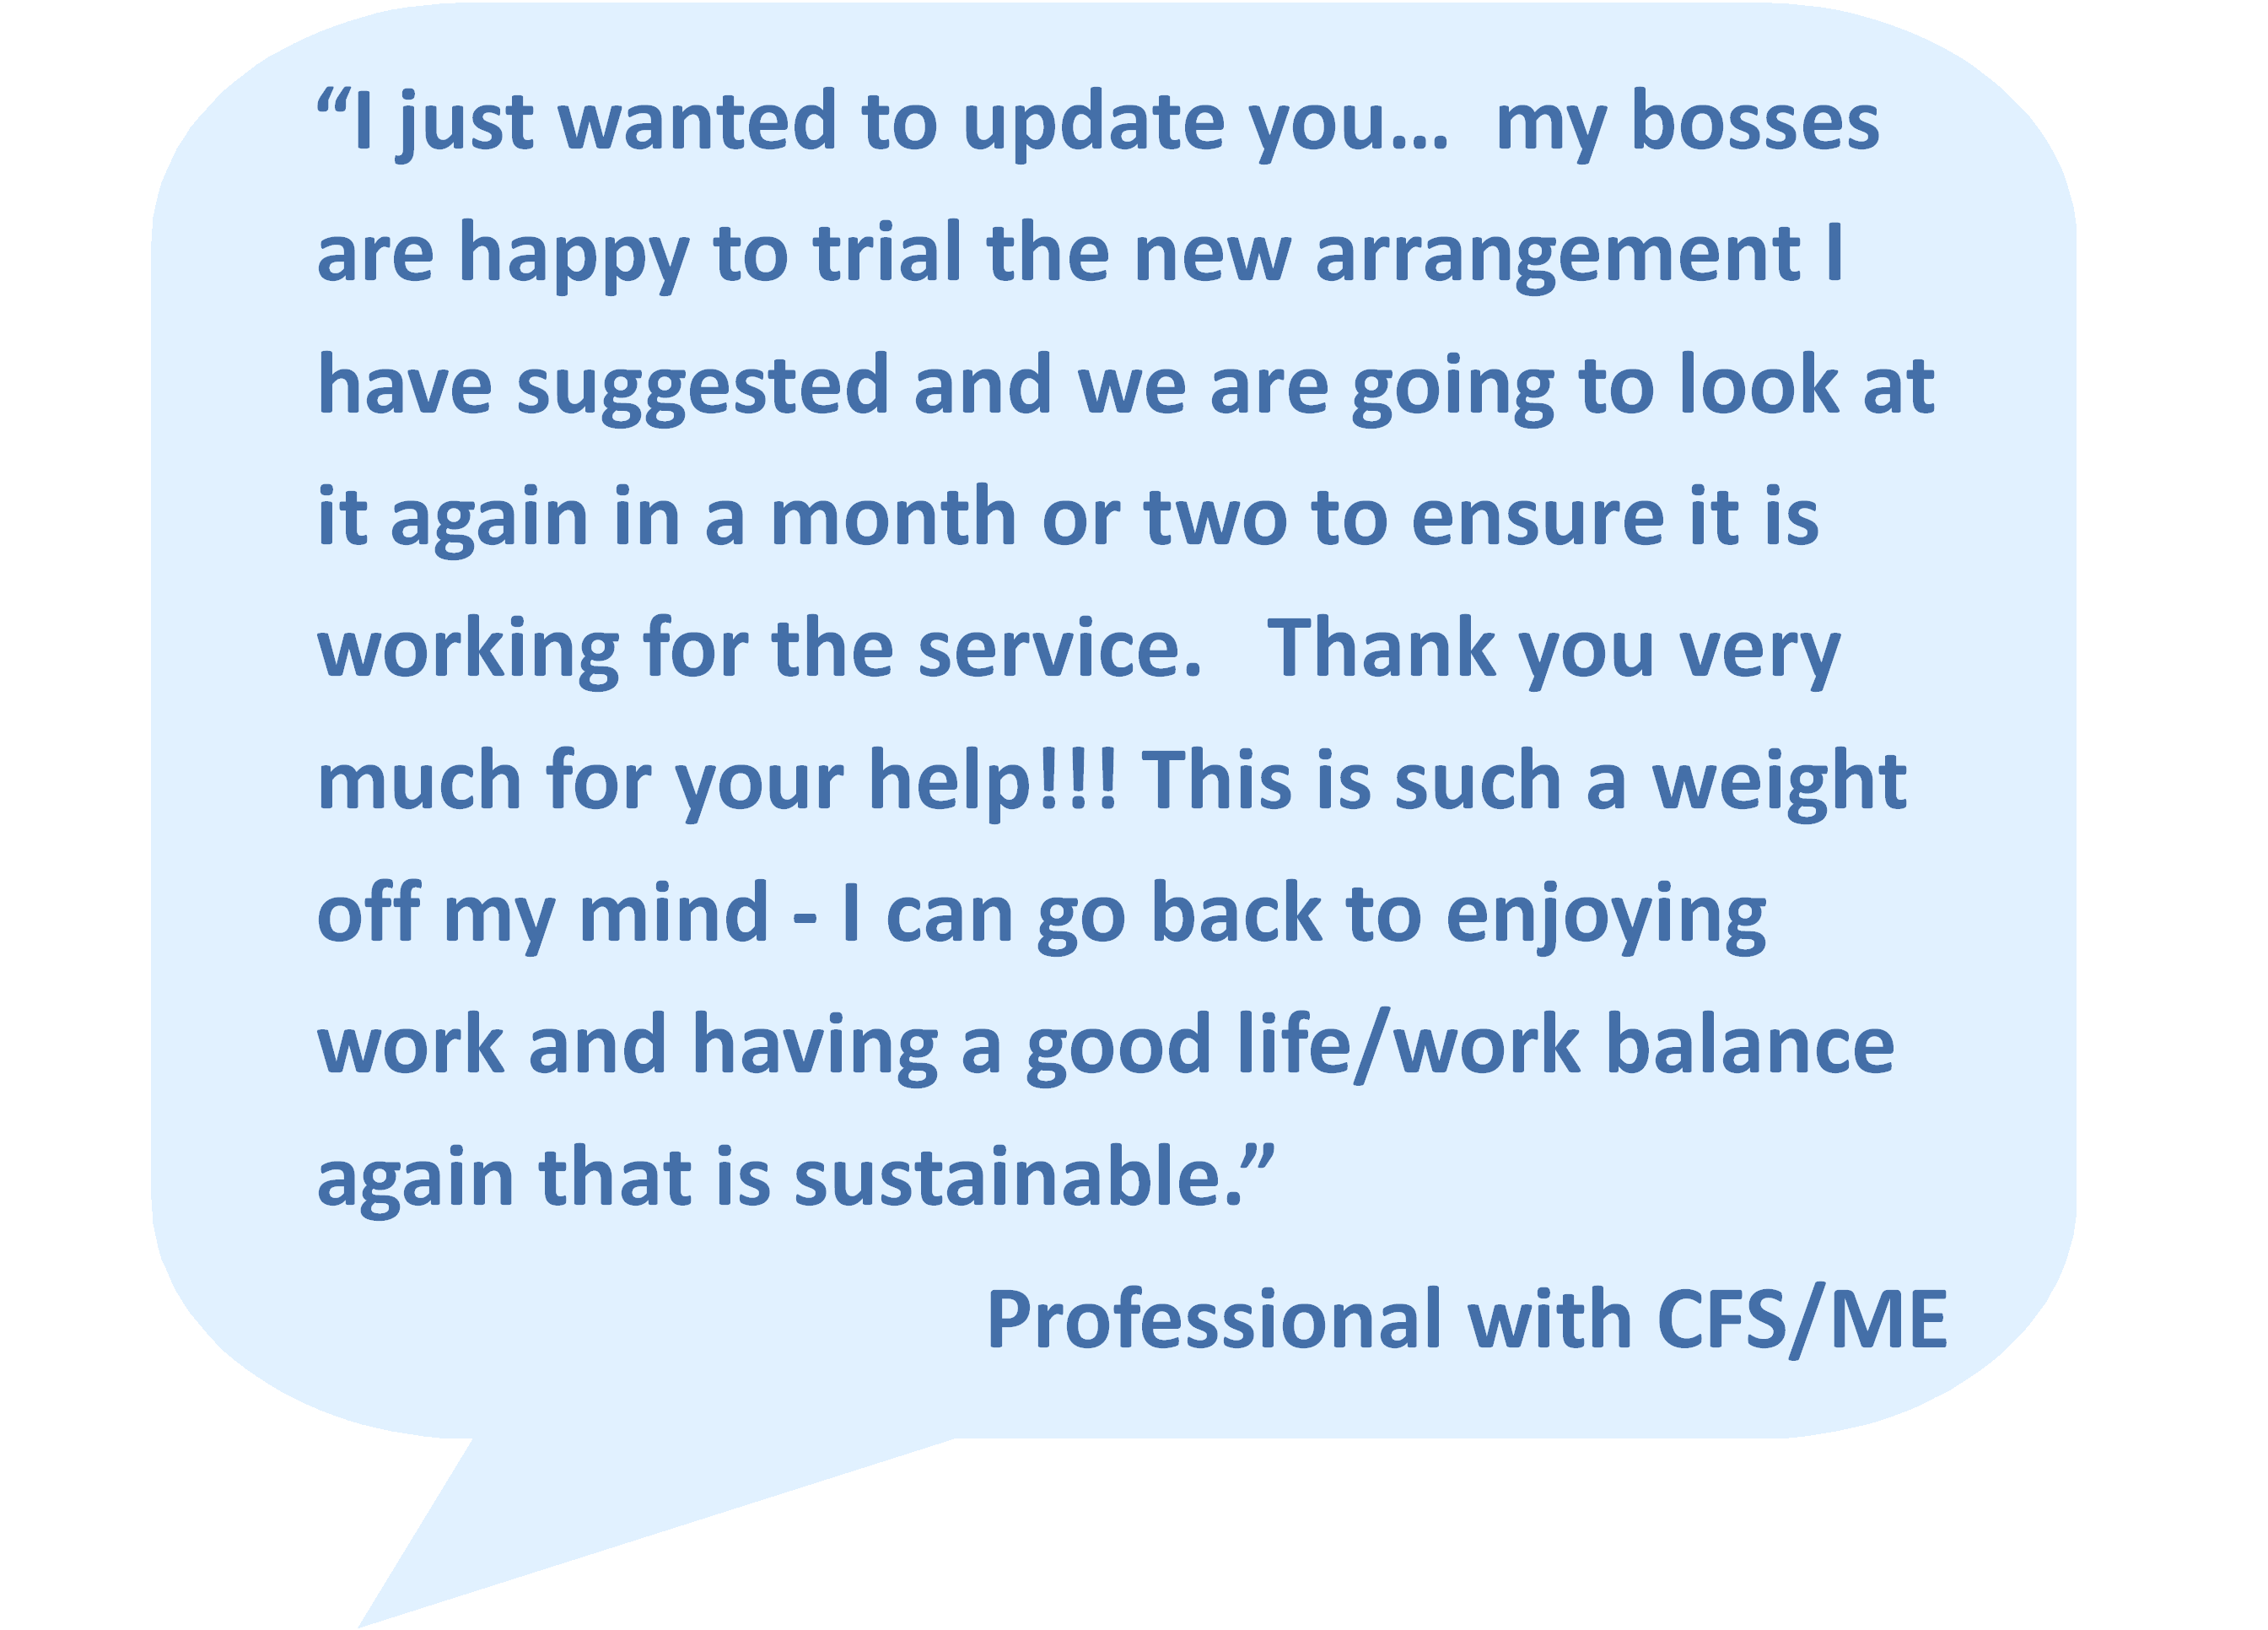 """I just wanted to update you… my bosses are happy to trial the new arrangement I have suggested and we are going to look at it again in a month or two to ensure it is working for the service. Thank you very much for your help!!! This is such a weight off my mind - I can go back to enjoying work and having a good life/work balance again that is sustainable.""  Professional with CFS/ME"